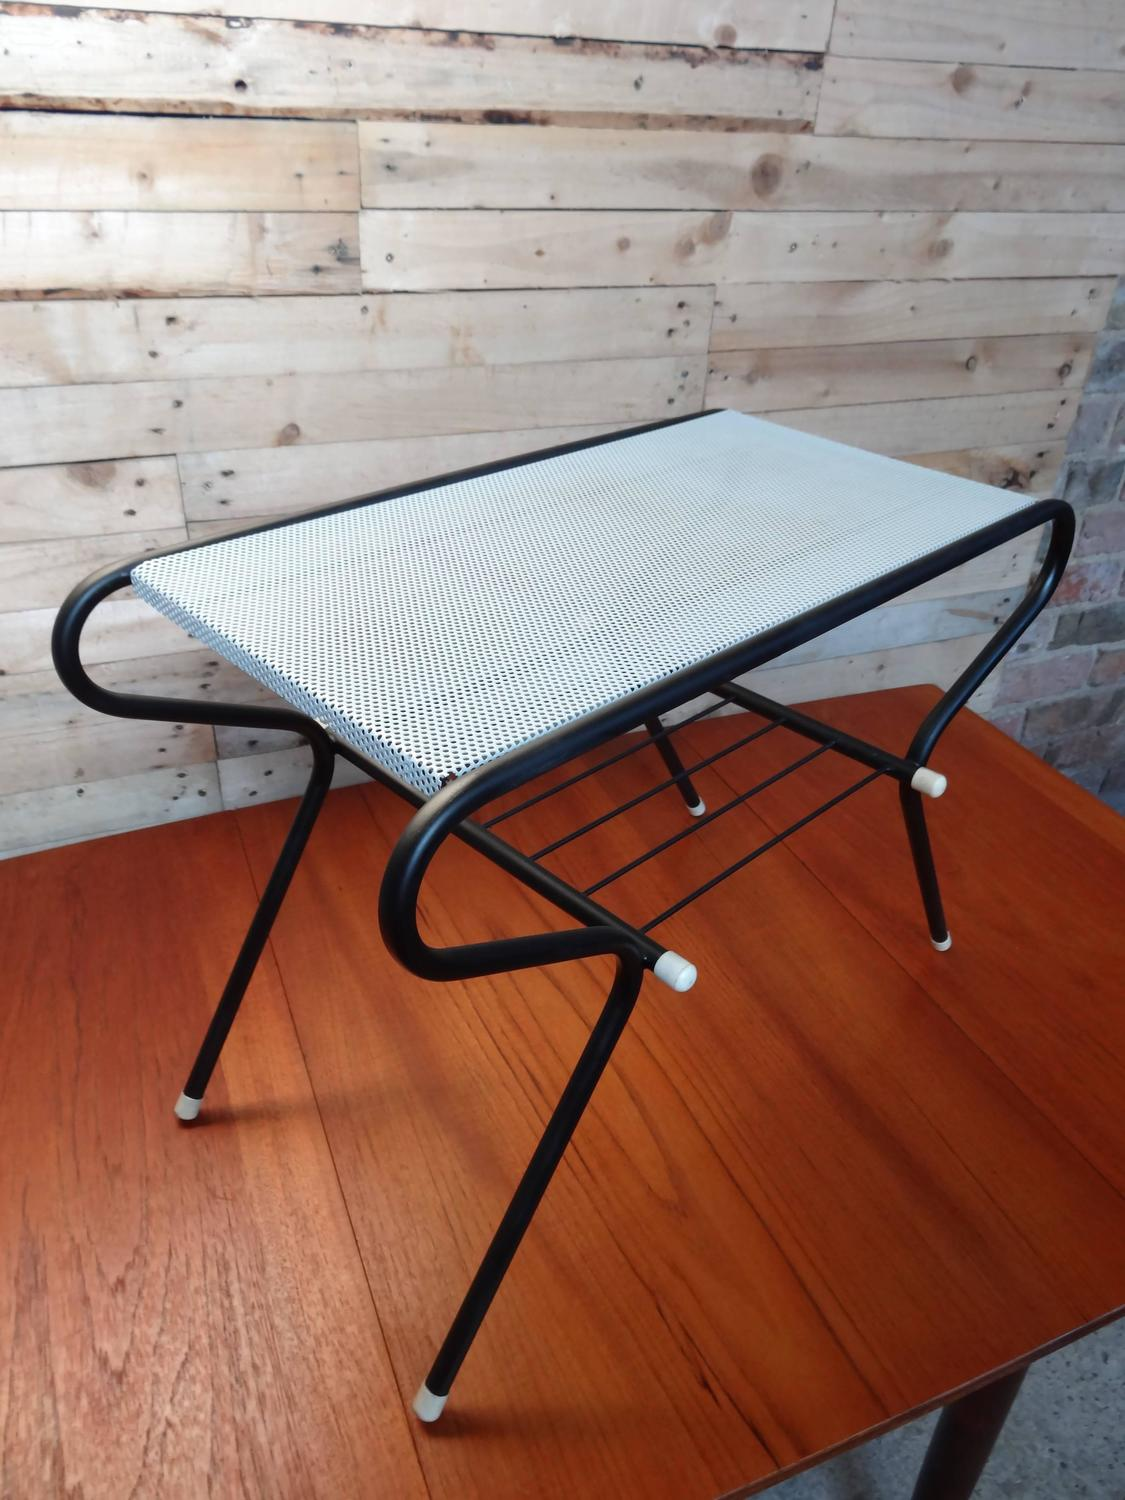 1950 Vintage Mathieu Mategot Black And White Metal Coffee Table For Sale At 1stdibs